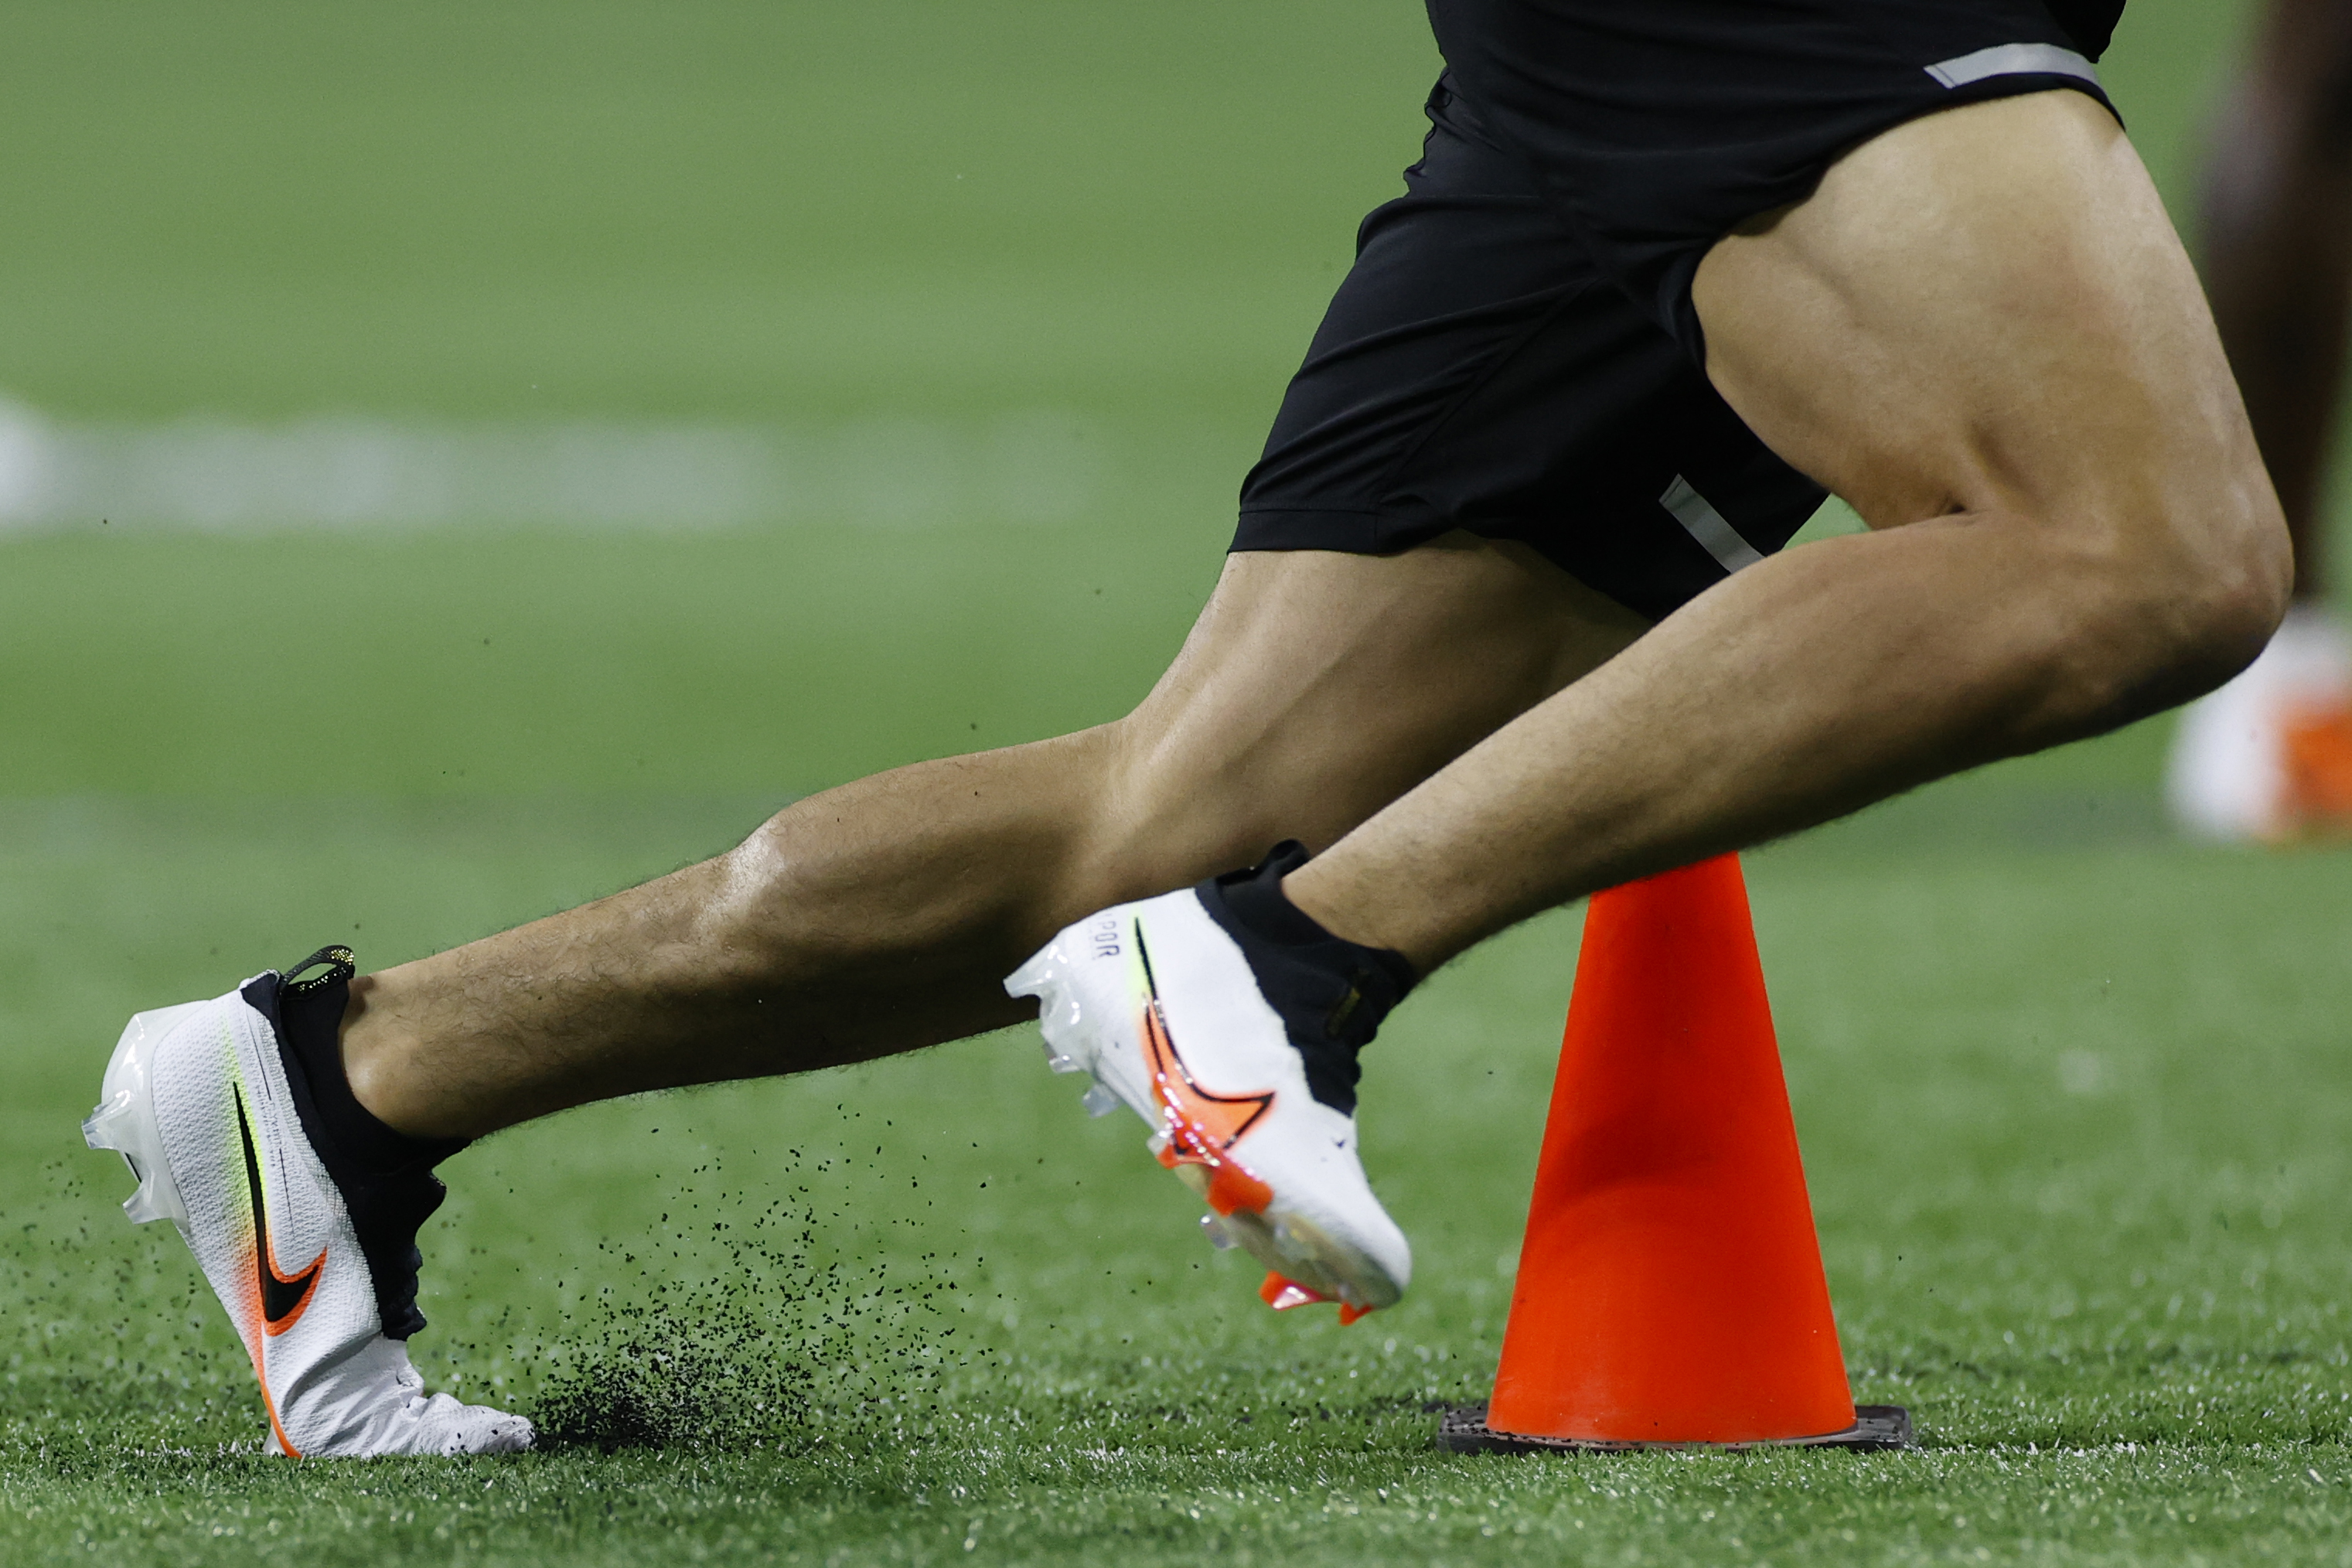 What Does It Take to Fail an NFL Physical?